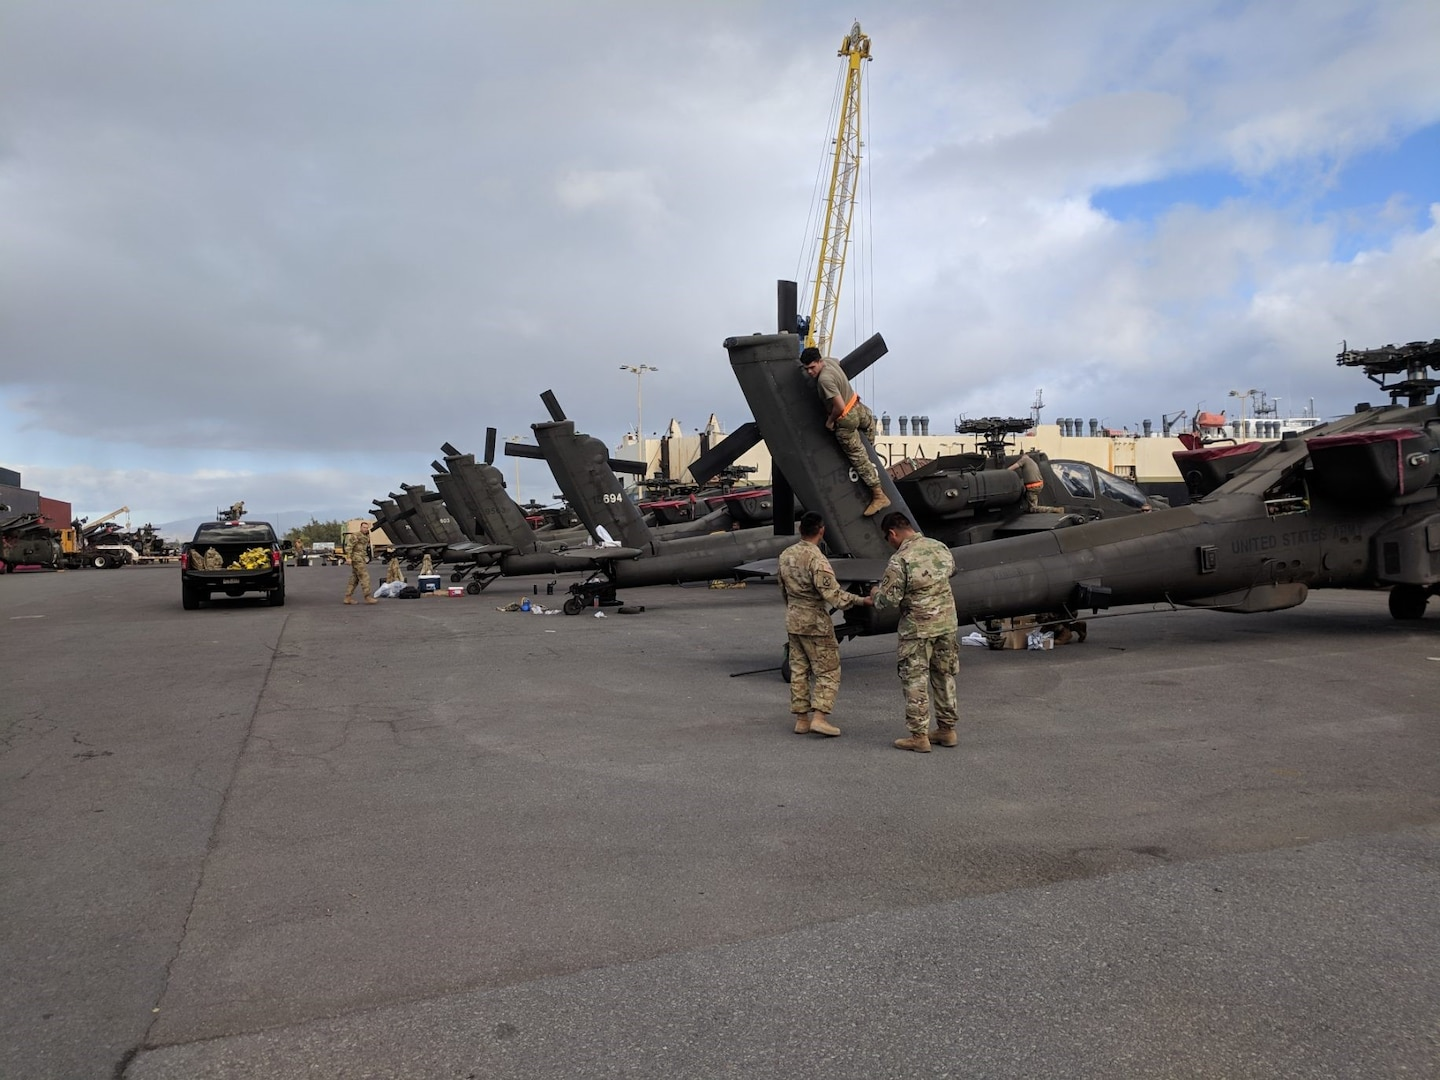 599th Facilitates Cargo Offload at Honolulu Harbor